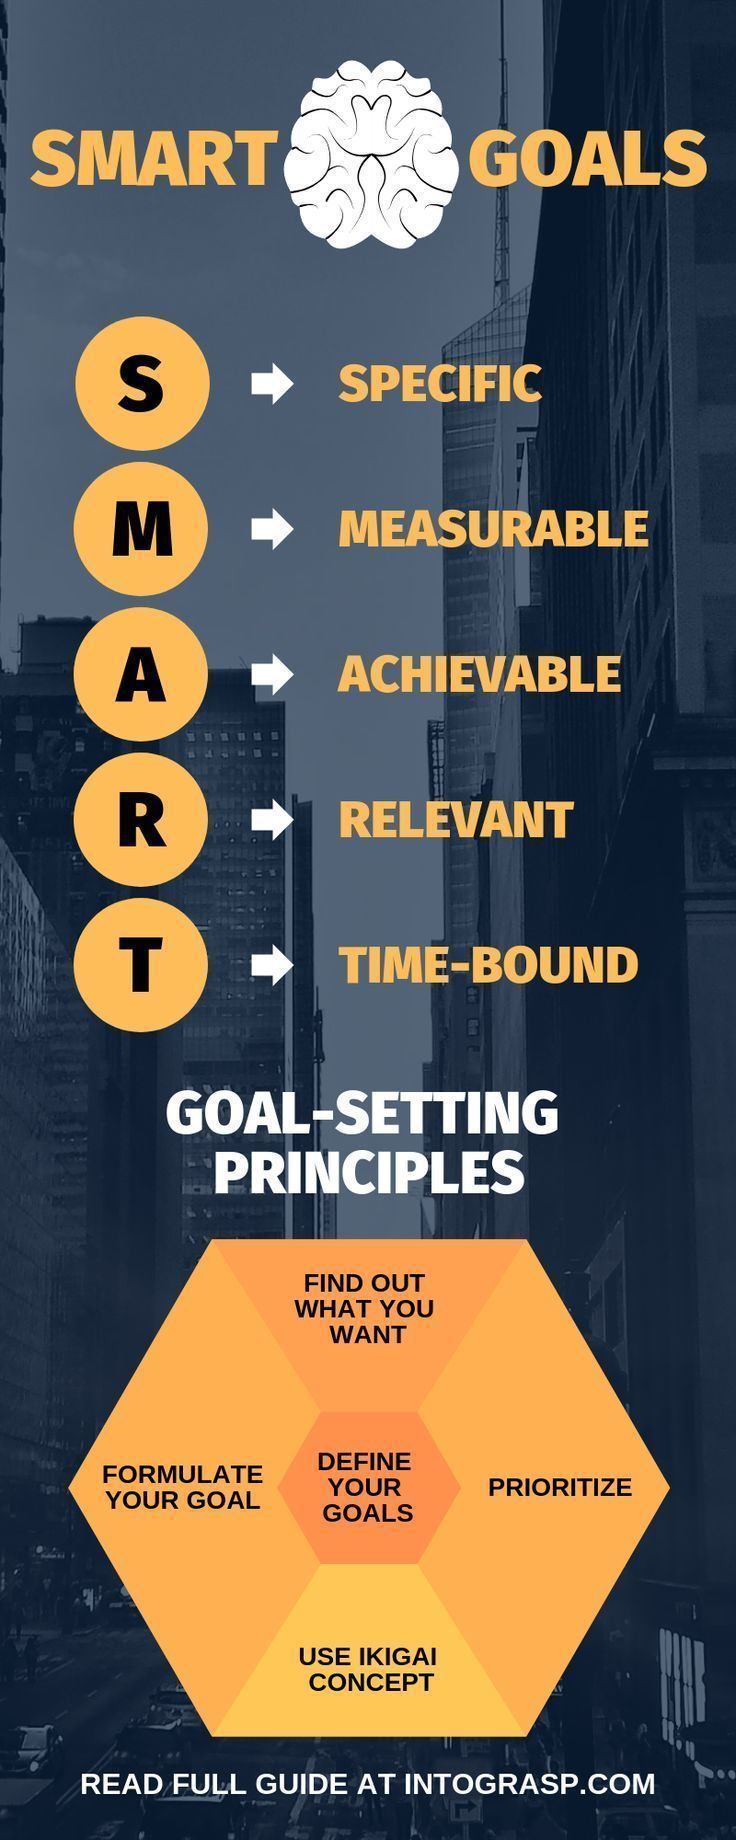 SMART Goals Complete Guide (Boost Goal-Setting 117%) - #Boost #Complete #Goals #GoalSetting #Guide #schiene #Smart #discipline